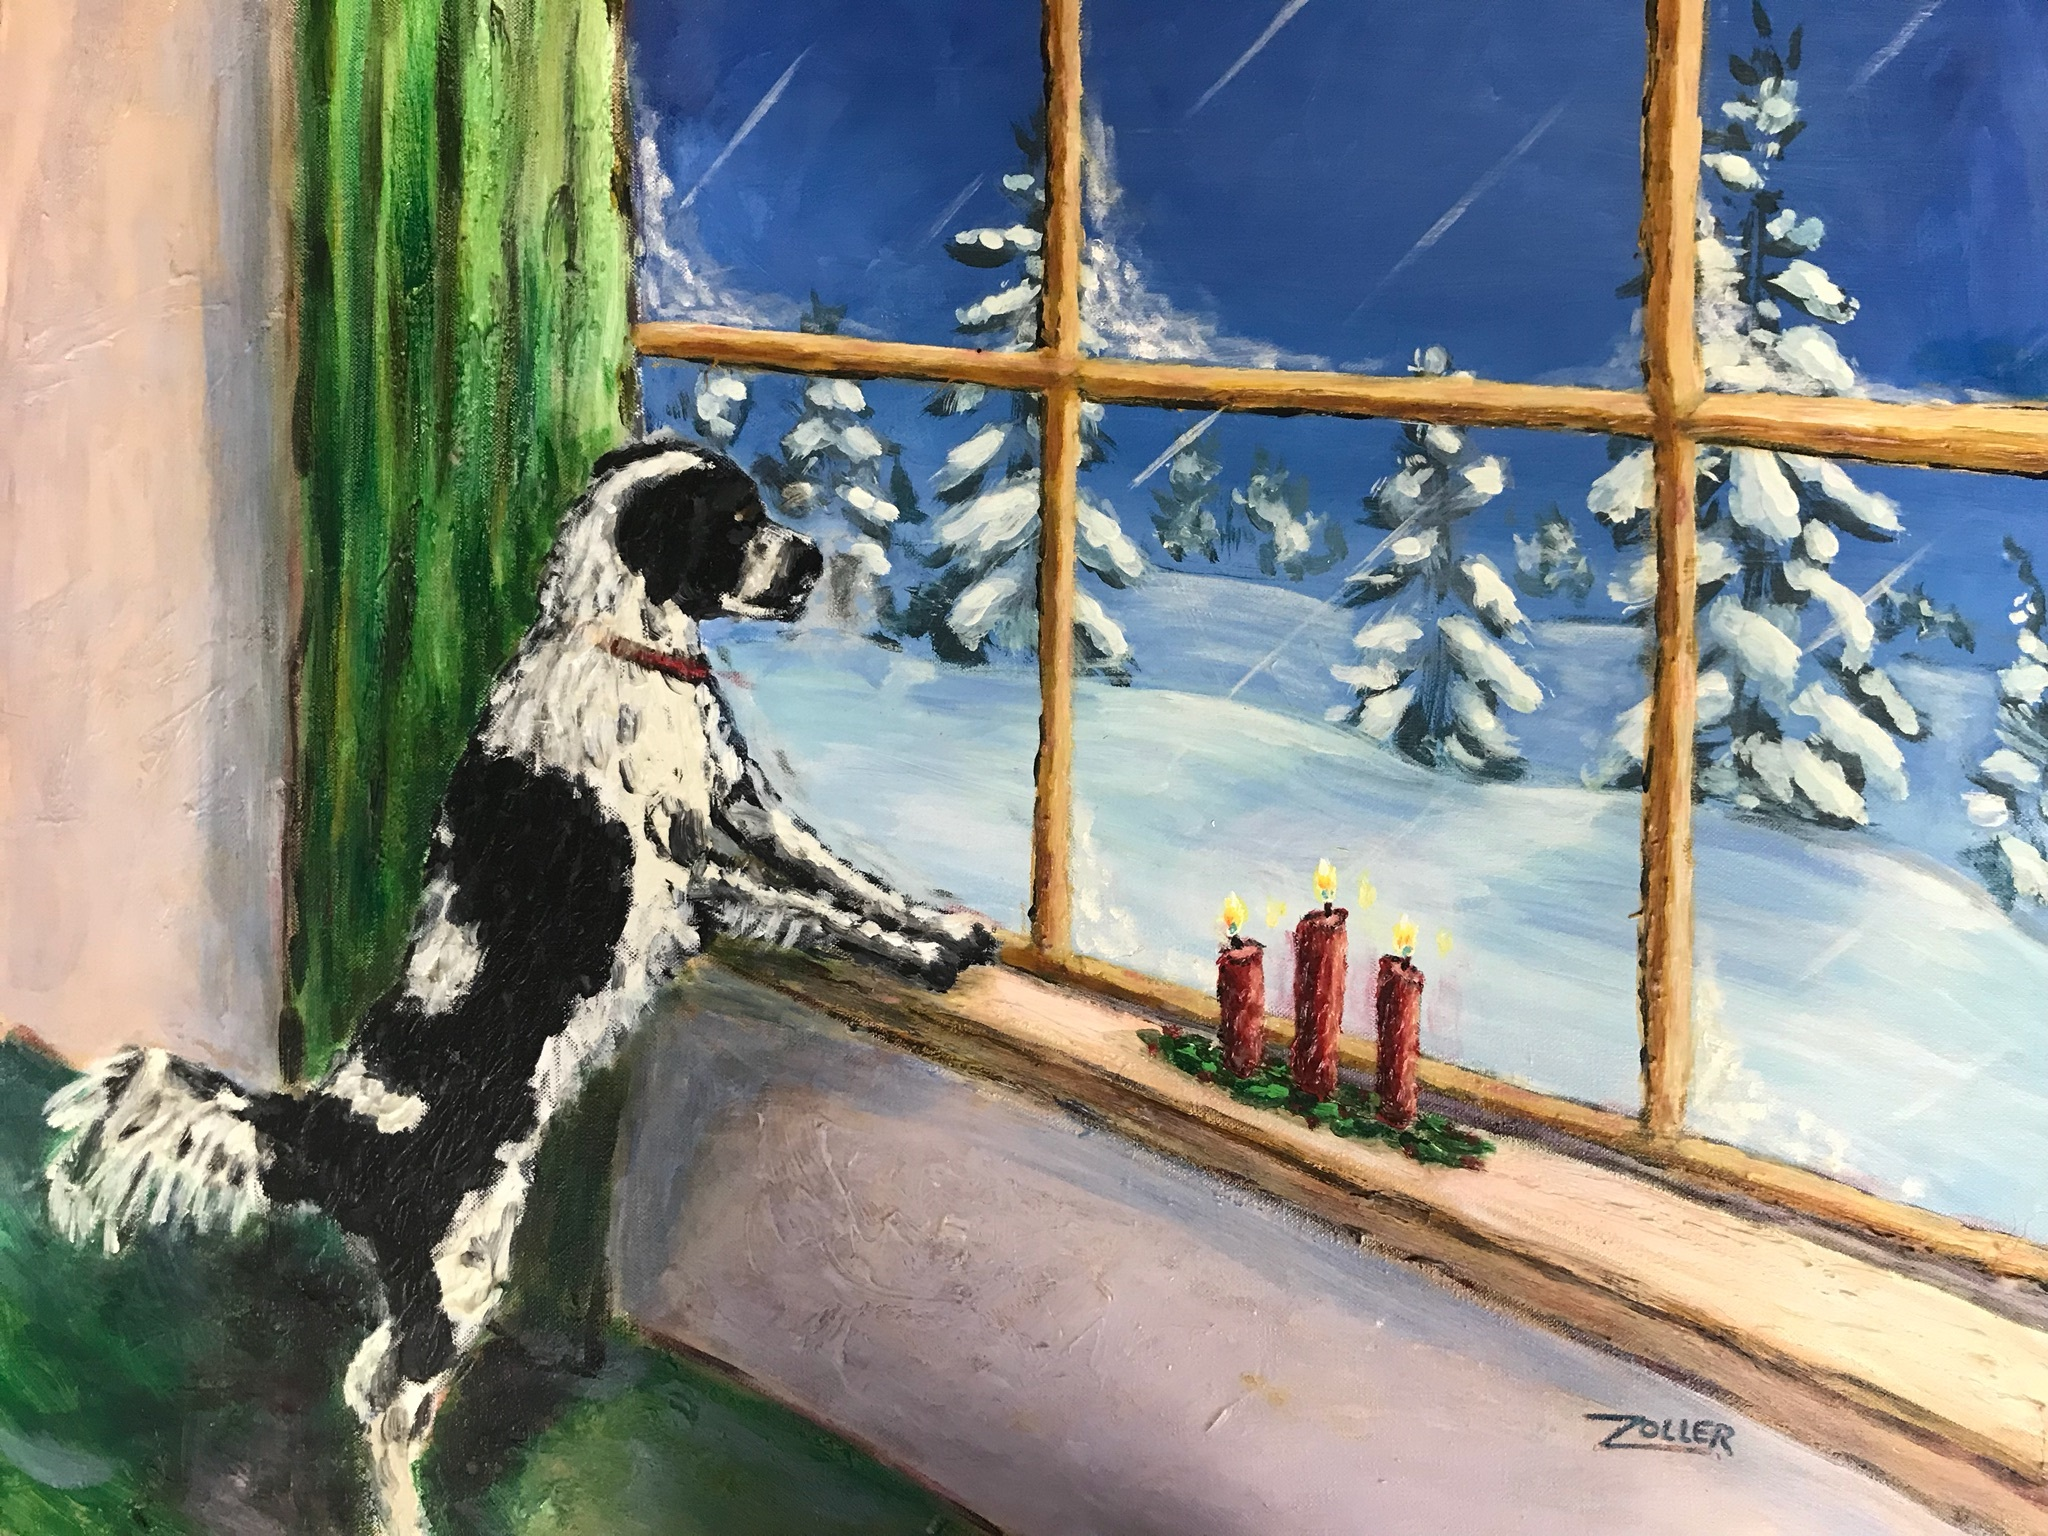 Artist Piece: Yule Window